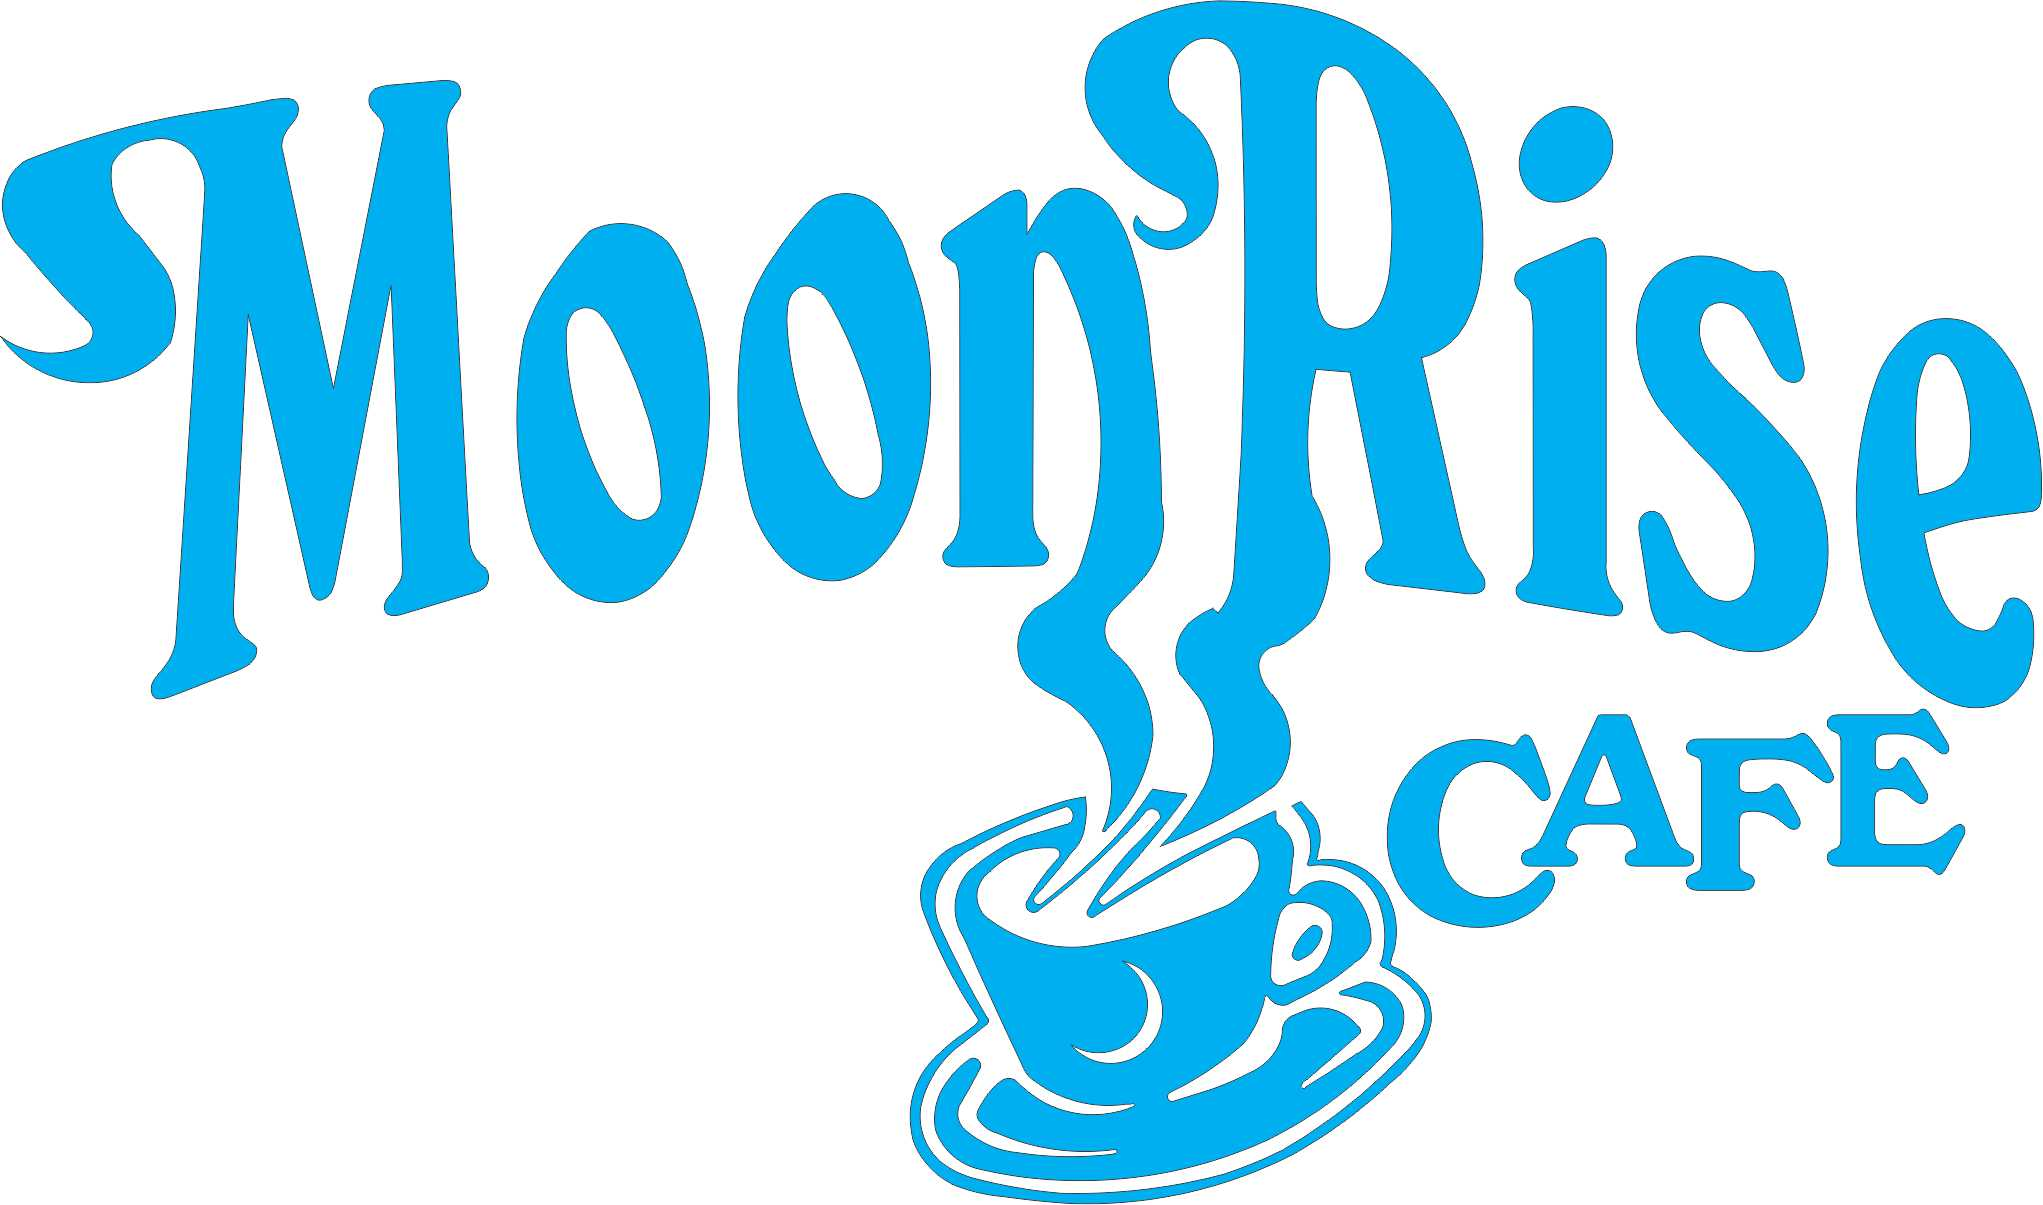 Moon Rise Cafe